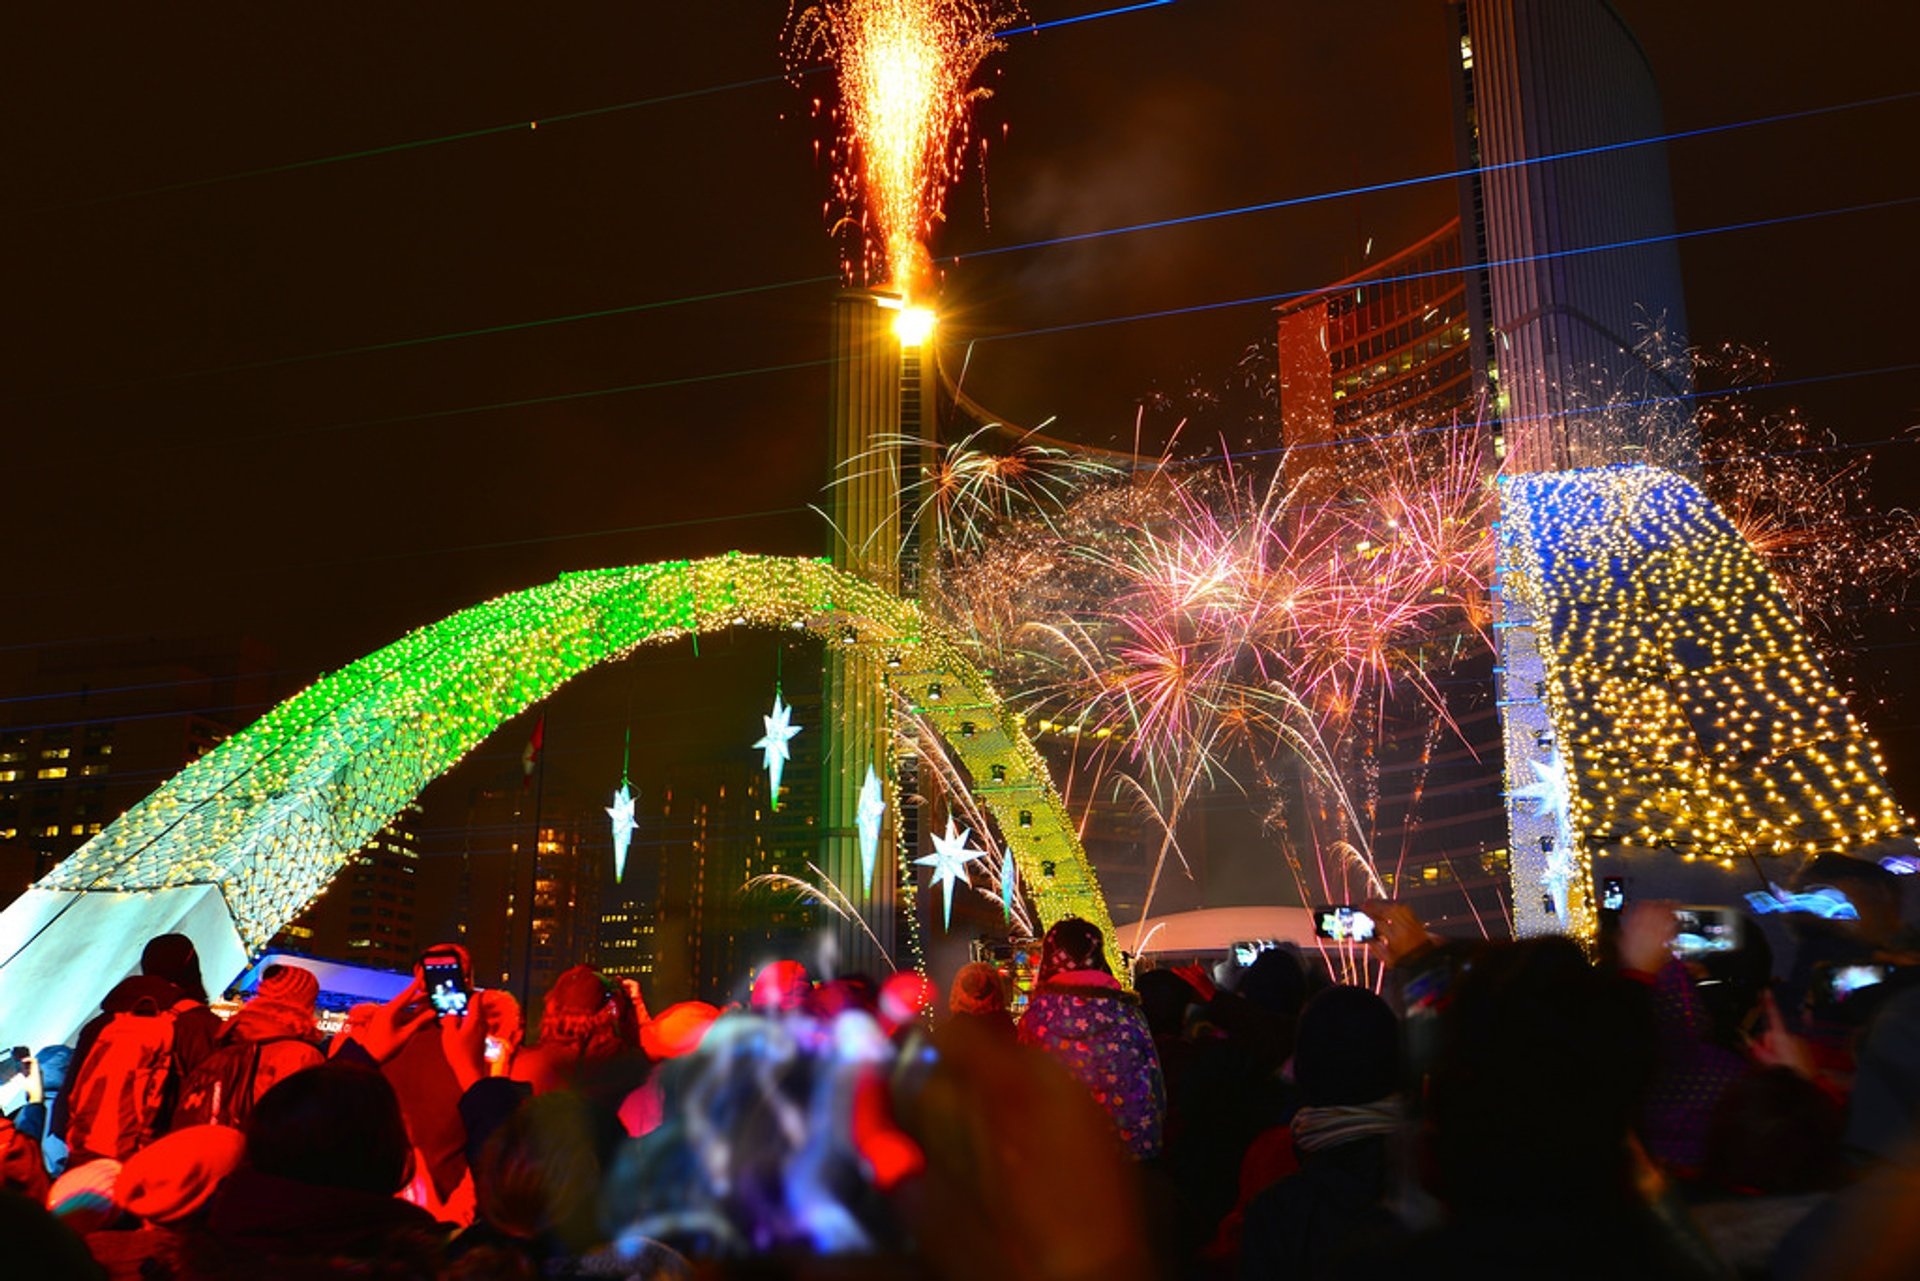 Cavalcade of Lights in Toronto 2020 - Best Time